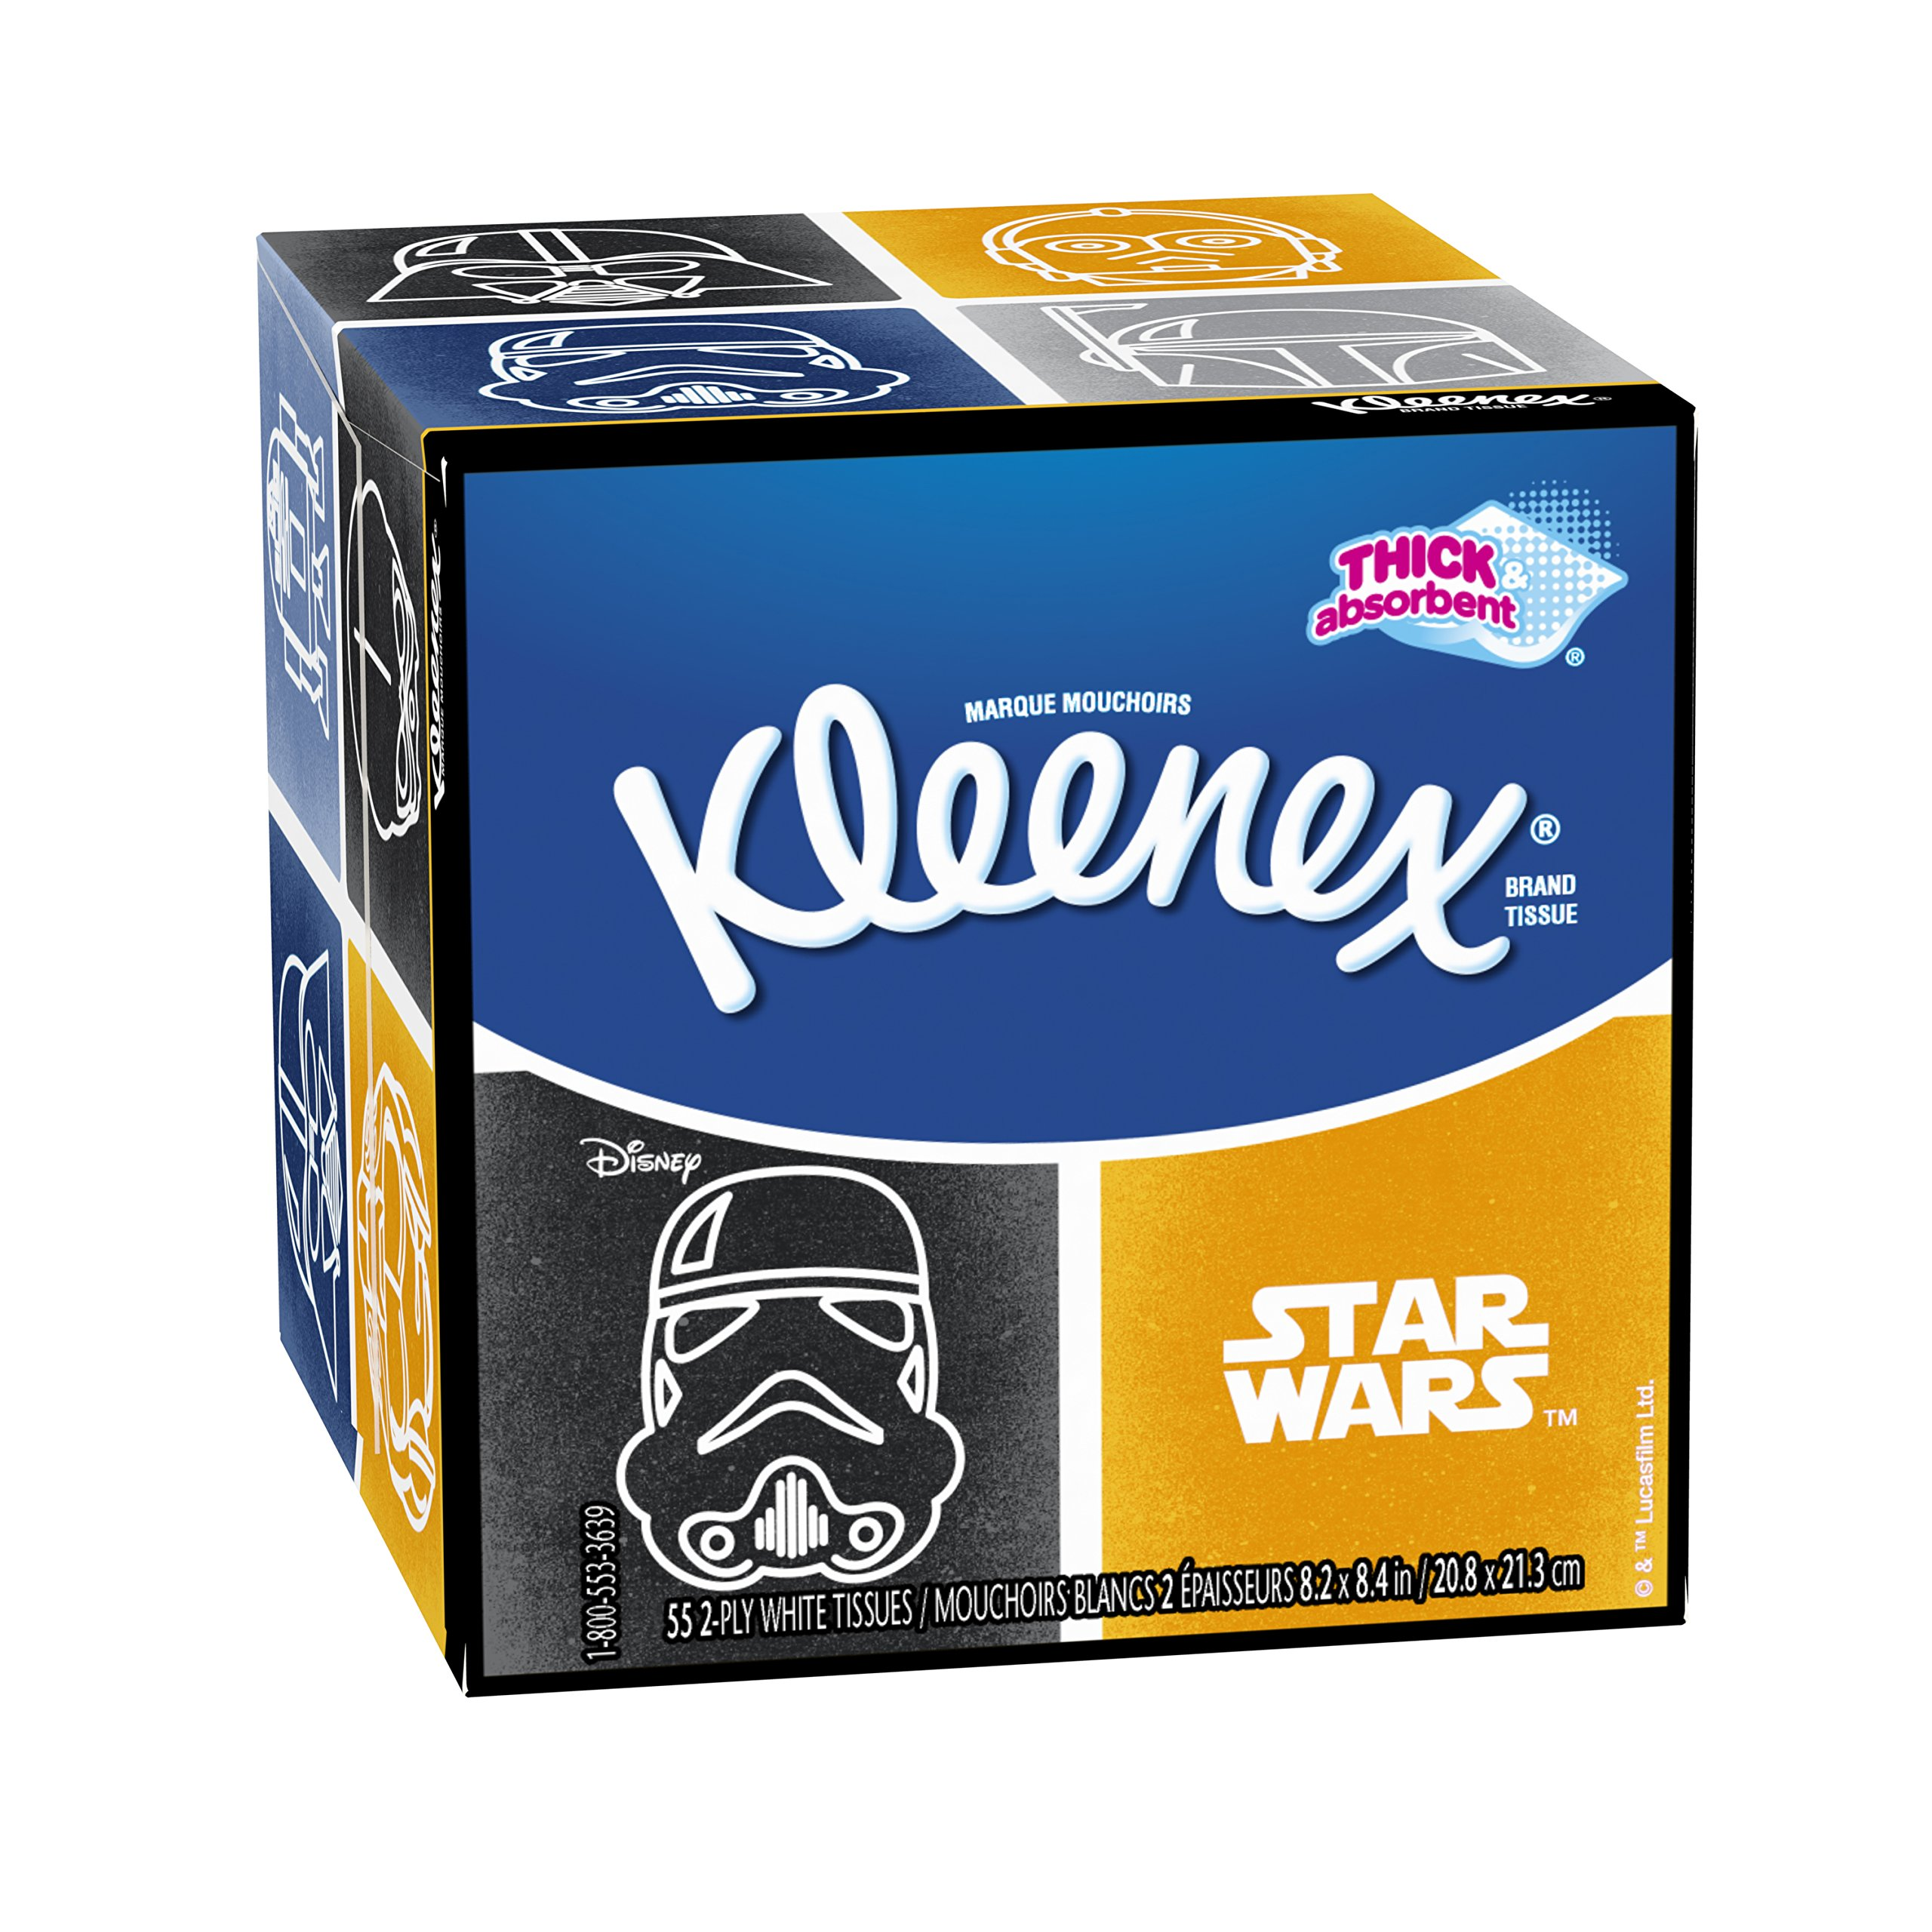 Kleenex Trusted Care  Facial Tissues, Star Wars Designs, 55 2-ply tissues per box(Pack of 27)